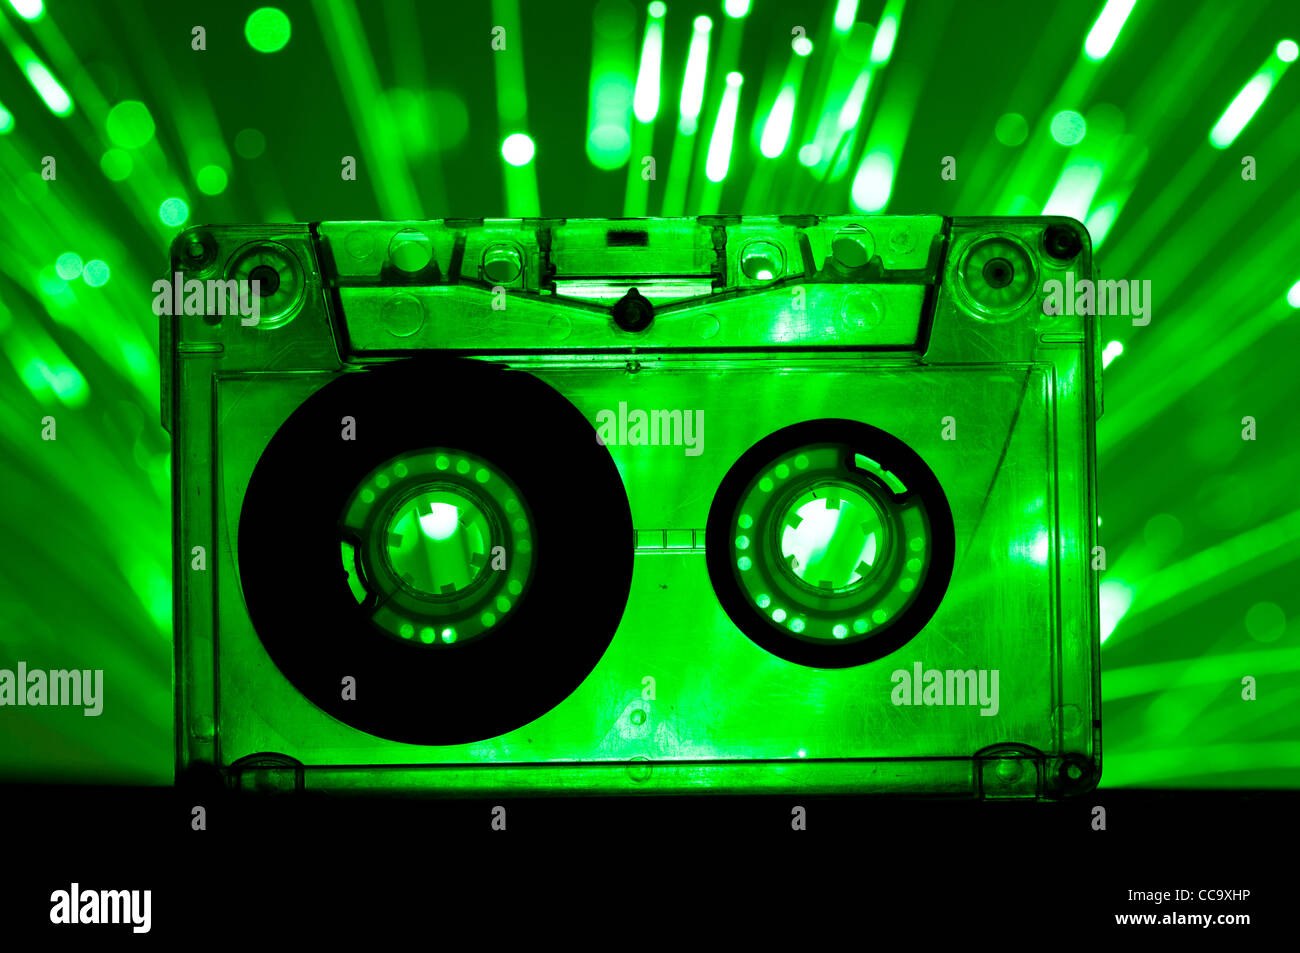 Transparent Cassette tape and green color disco lights background - Stock Image